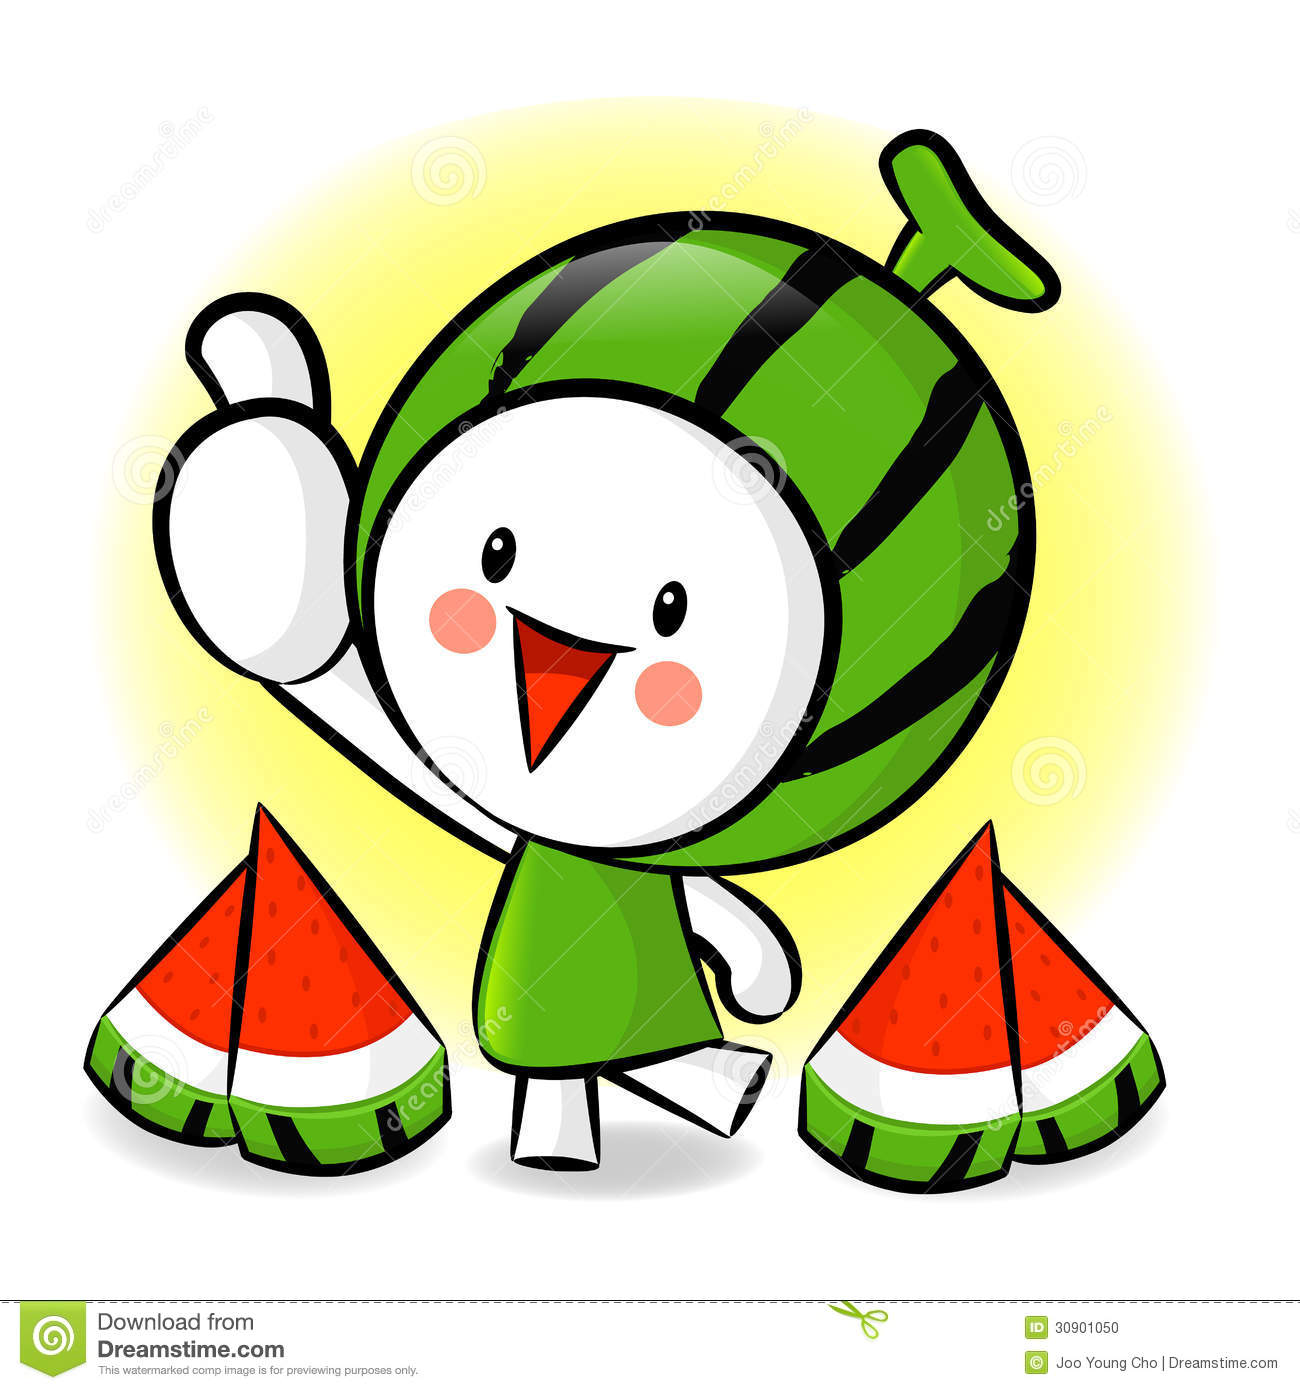 Watermelon characters to promote fruit selling  Fruit Character Design    Watermelon Cartoon Characters